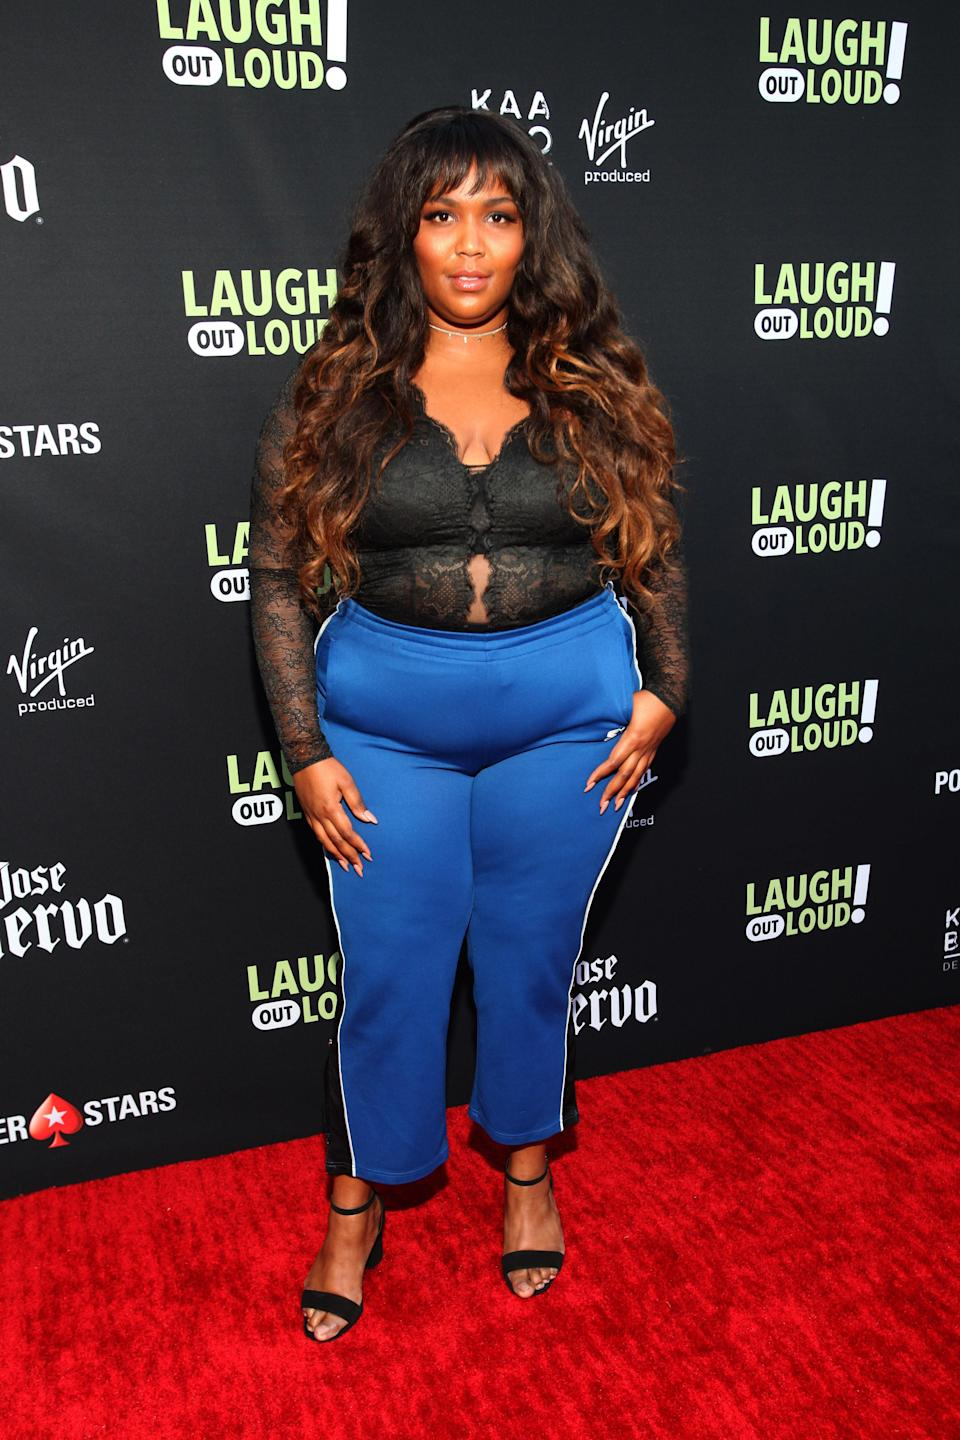 It takes courage to rock tracksuits to a red carpet and Lizzo's got plenty of that.